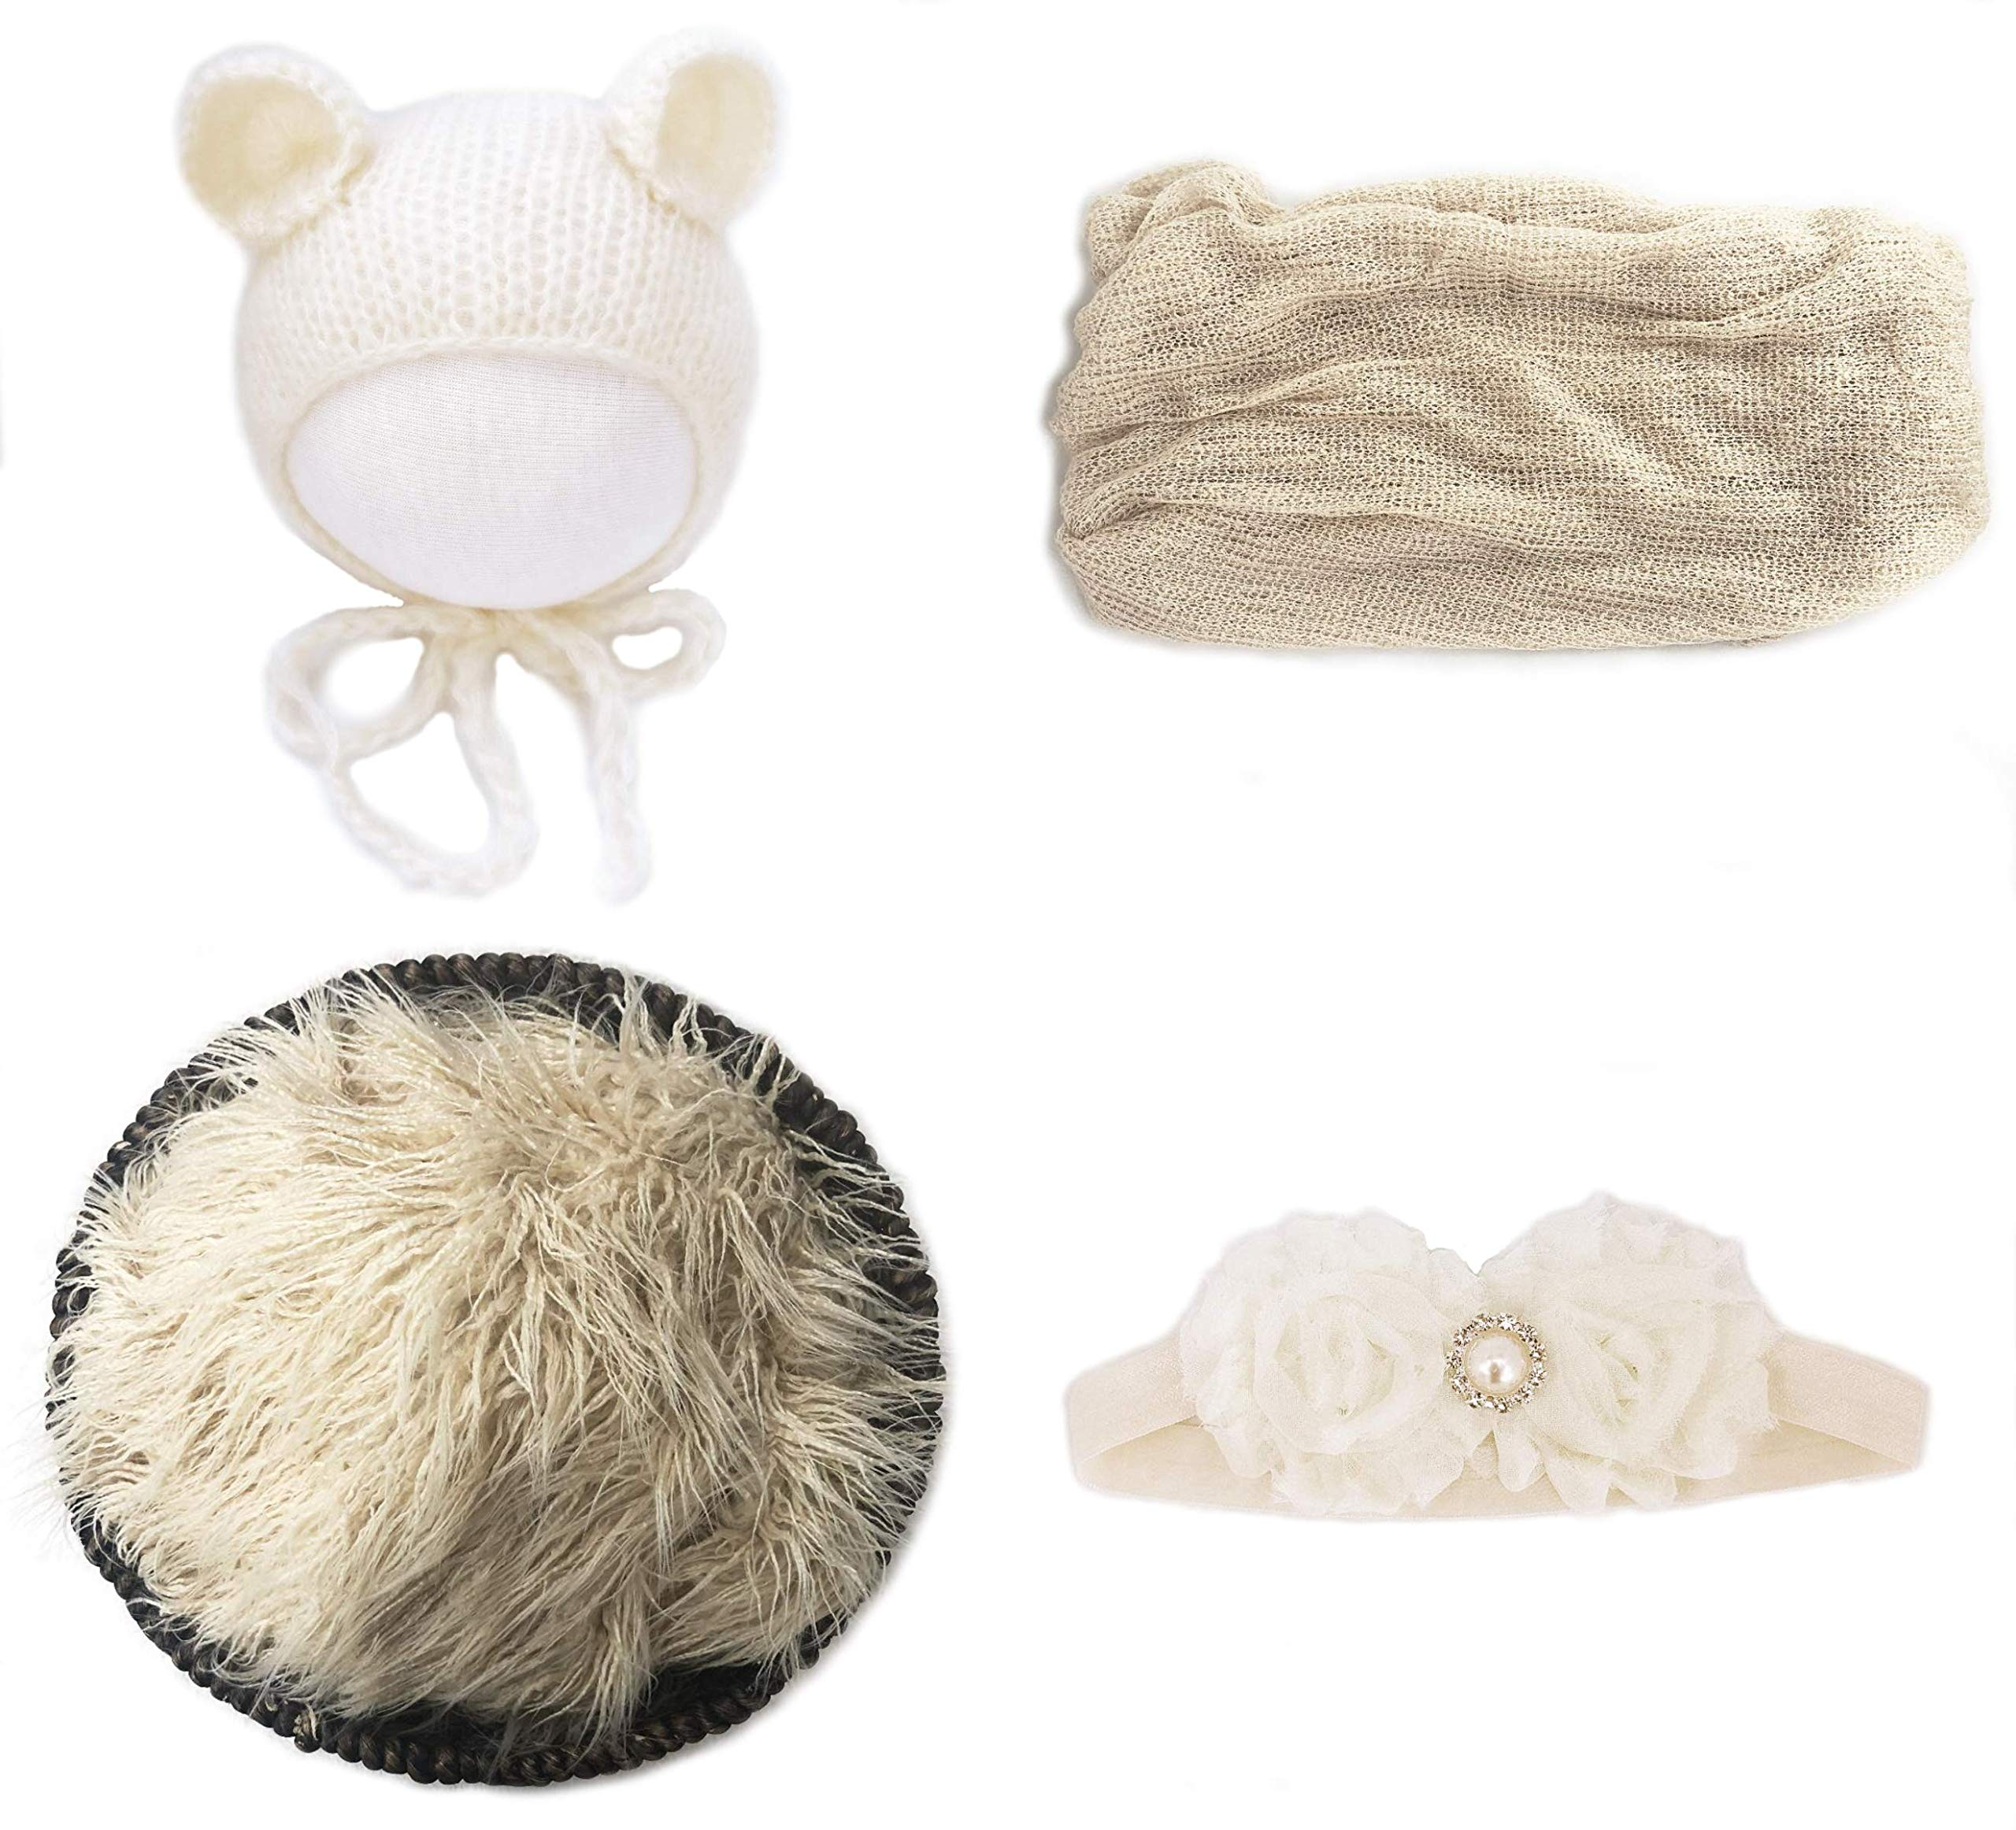 Jay-EE Newborn 4 Pcs Photography Props Set Baby Photo Prop Long Ripple Stretch Wrap, Headband, Ears Hat and Faux Fur Backdrop Blanket (Beige) by Jay-EE